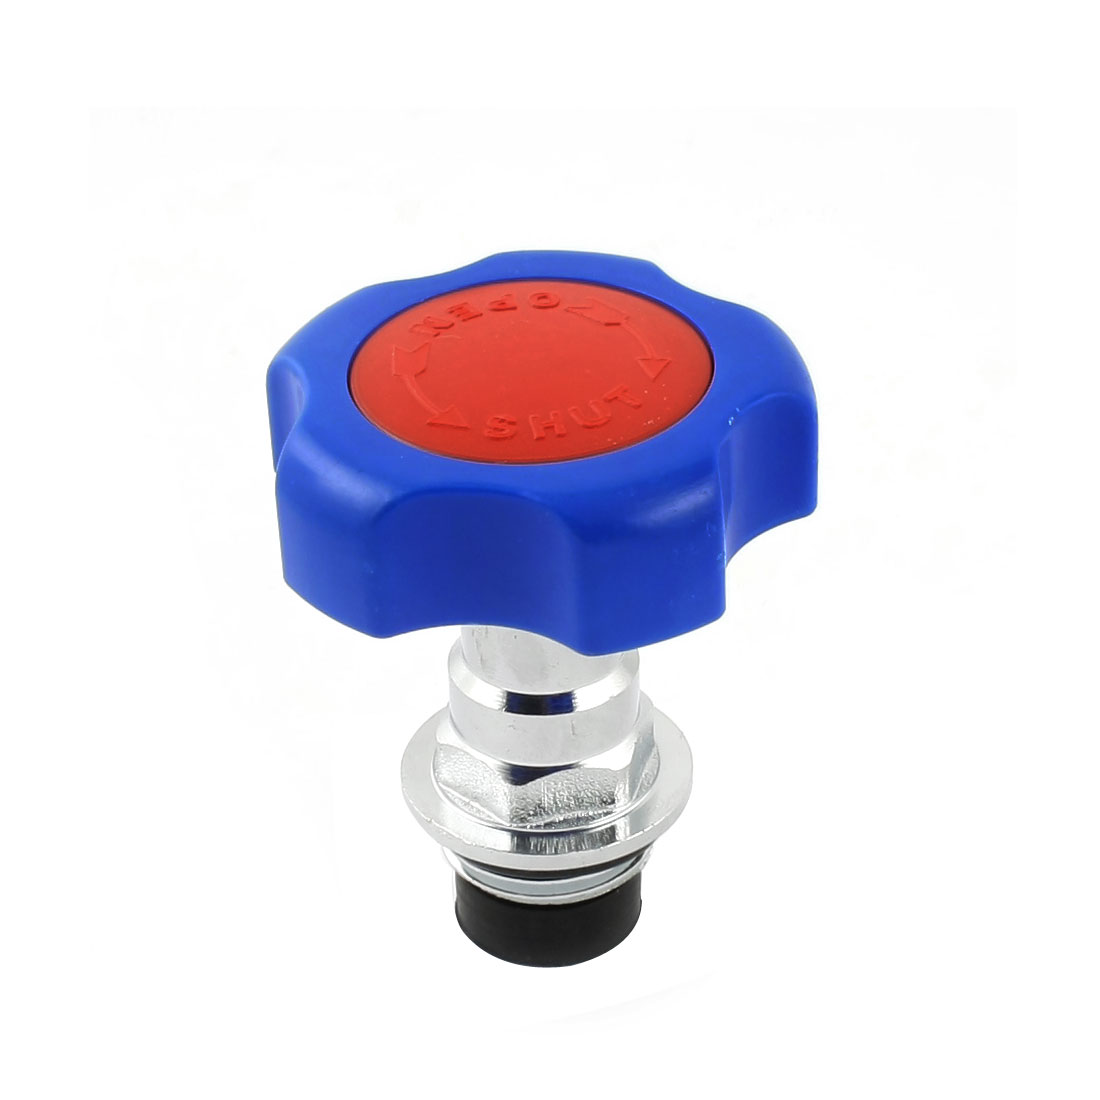 48mm Dia Handwheel 1/2PT Male Thread Water Tap Faucet Gate Valve Blue